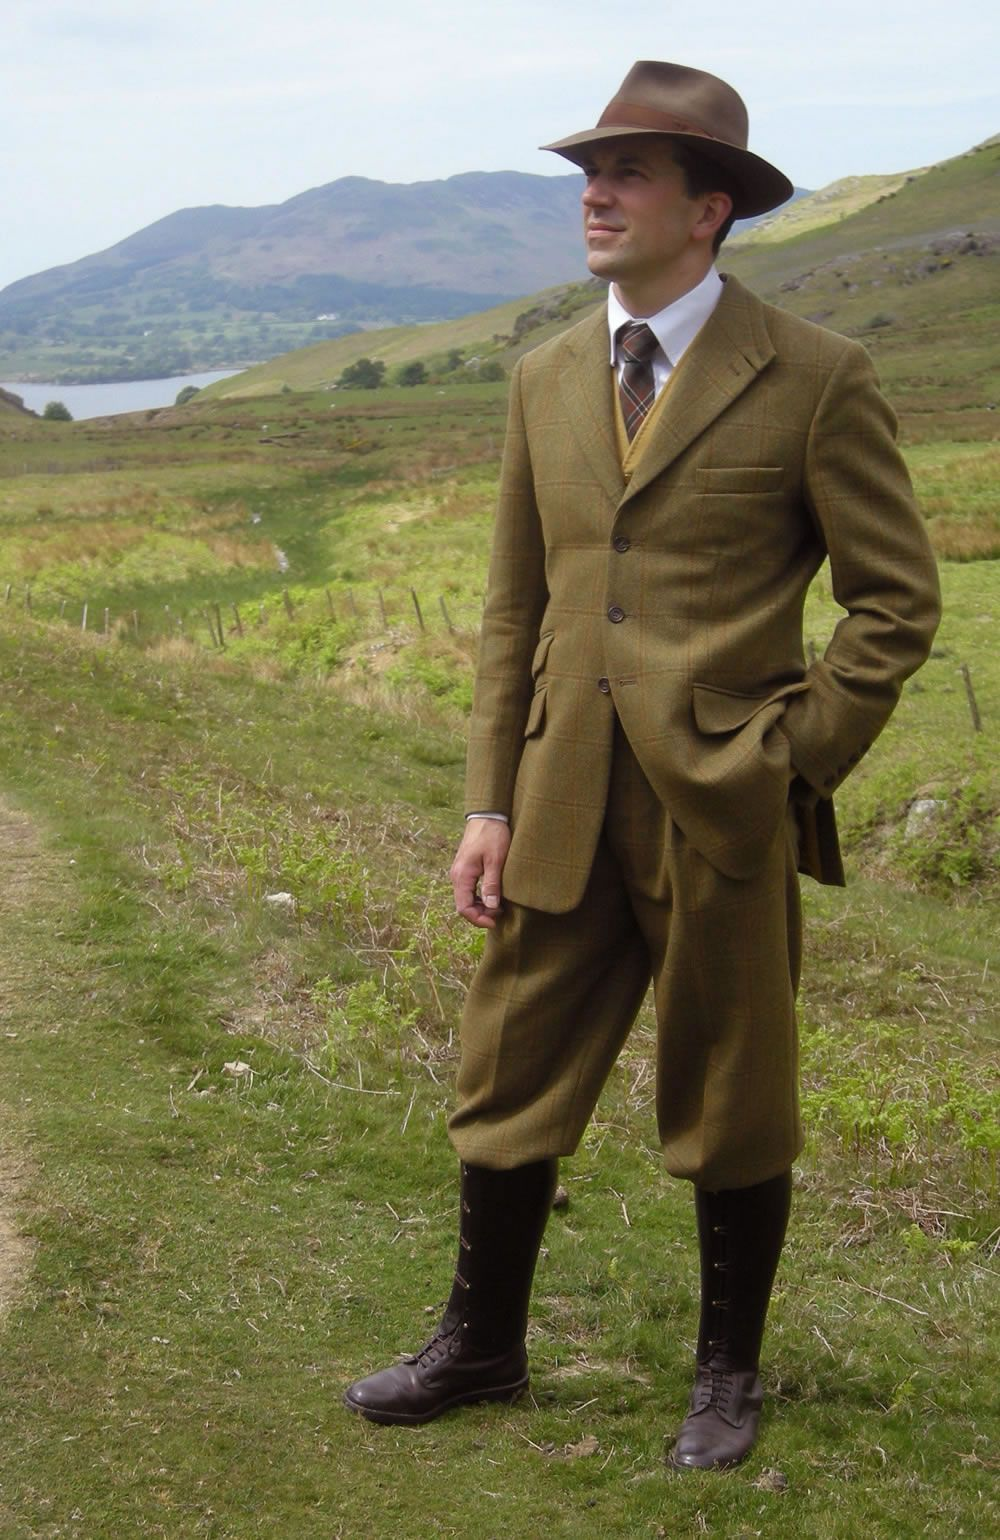 Suits do not automatically by the nature look very formal.